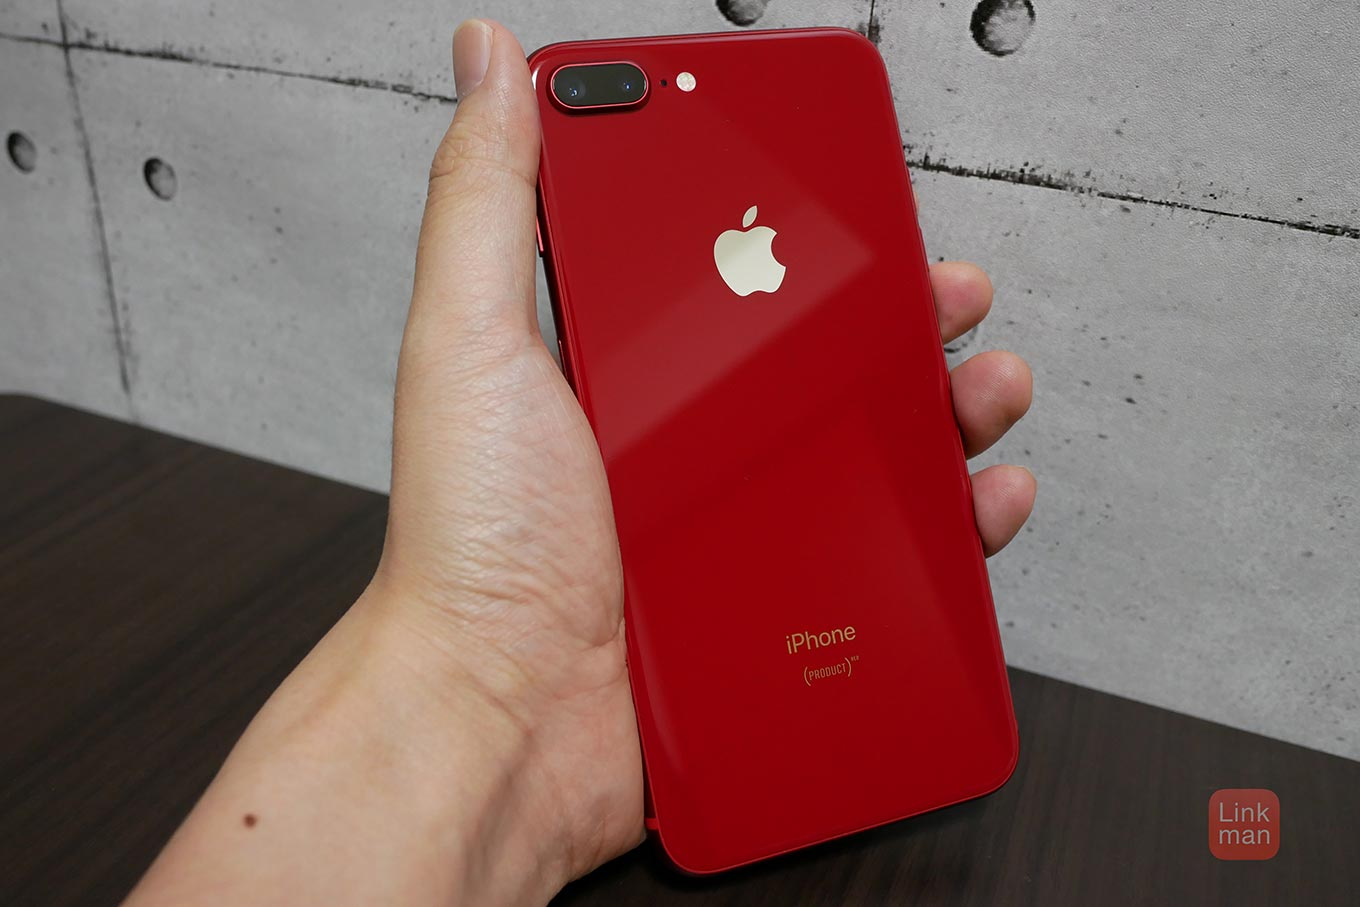 Iphone8plusproductred 12